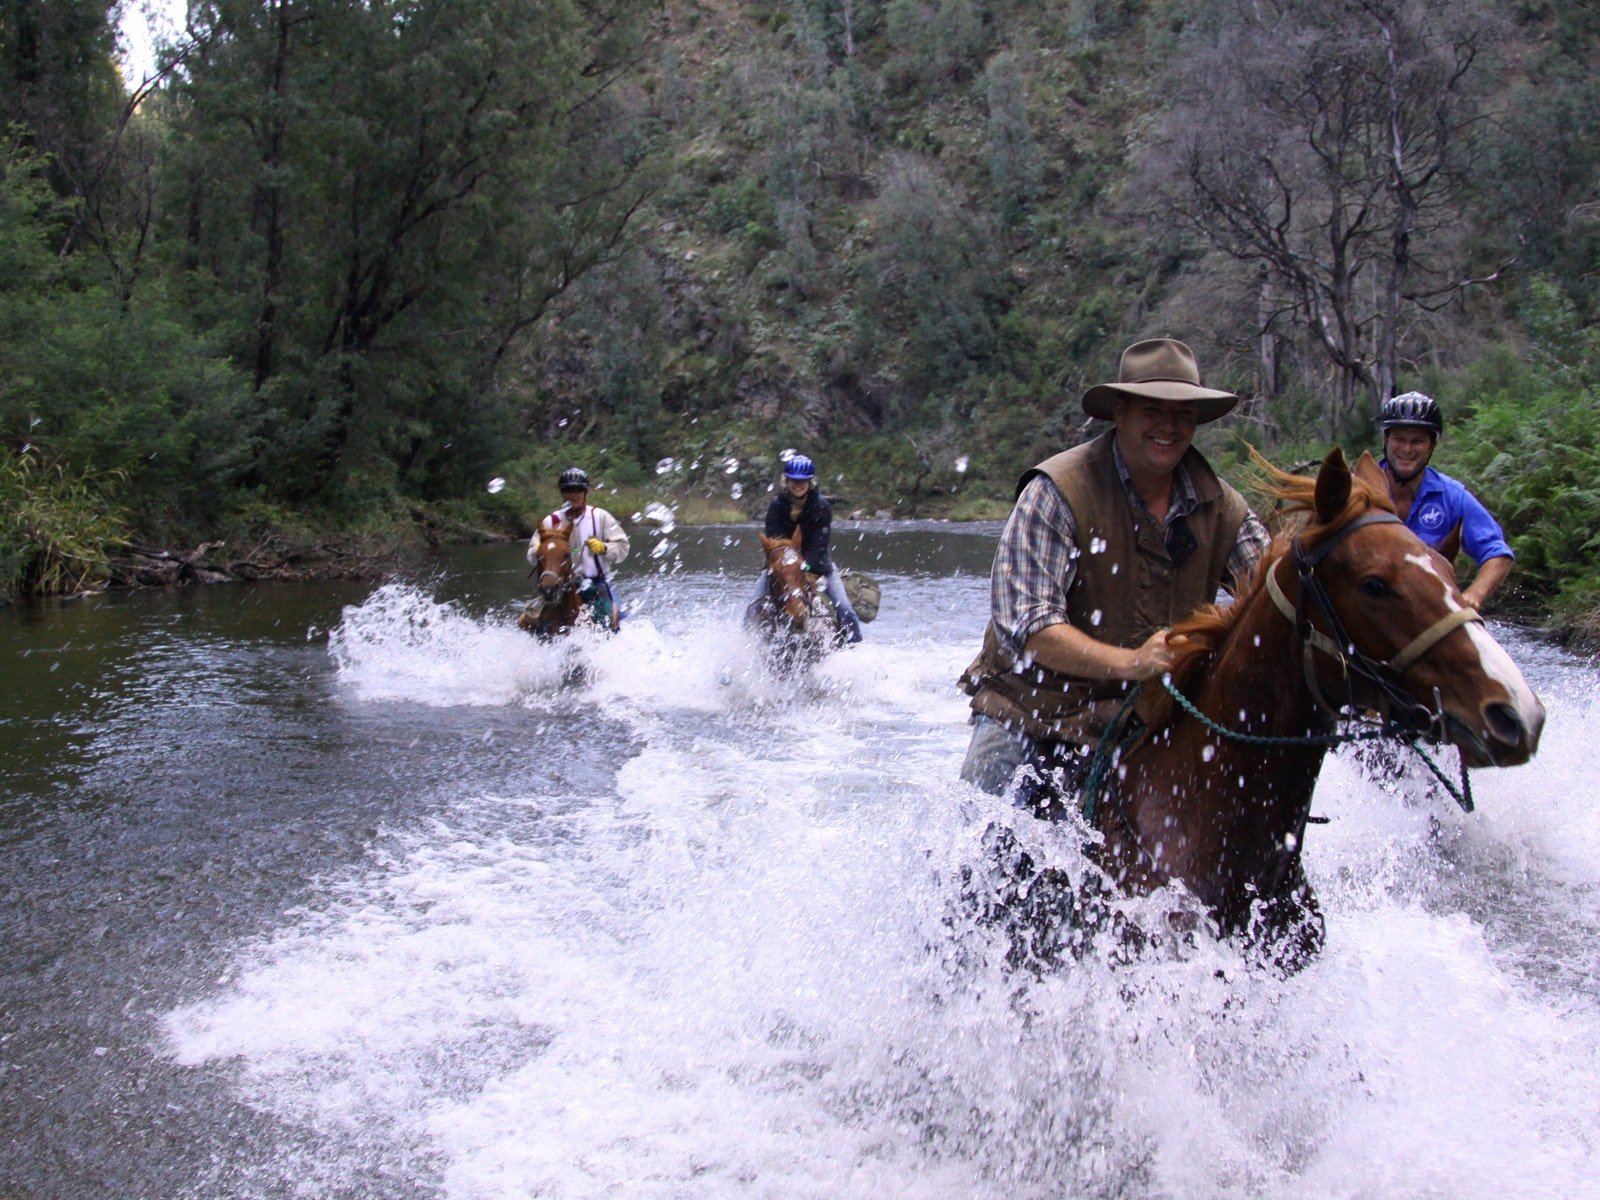 Horse riding along the Howqua River